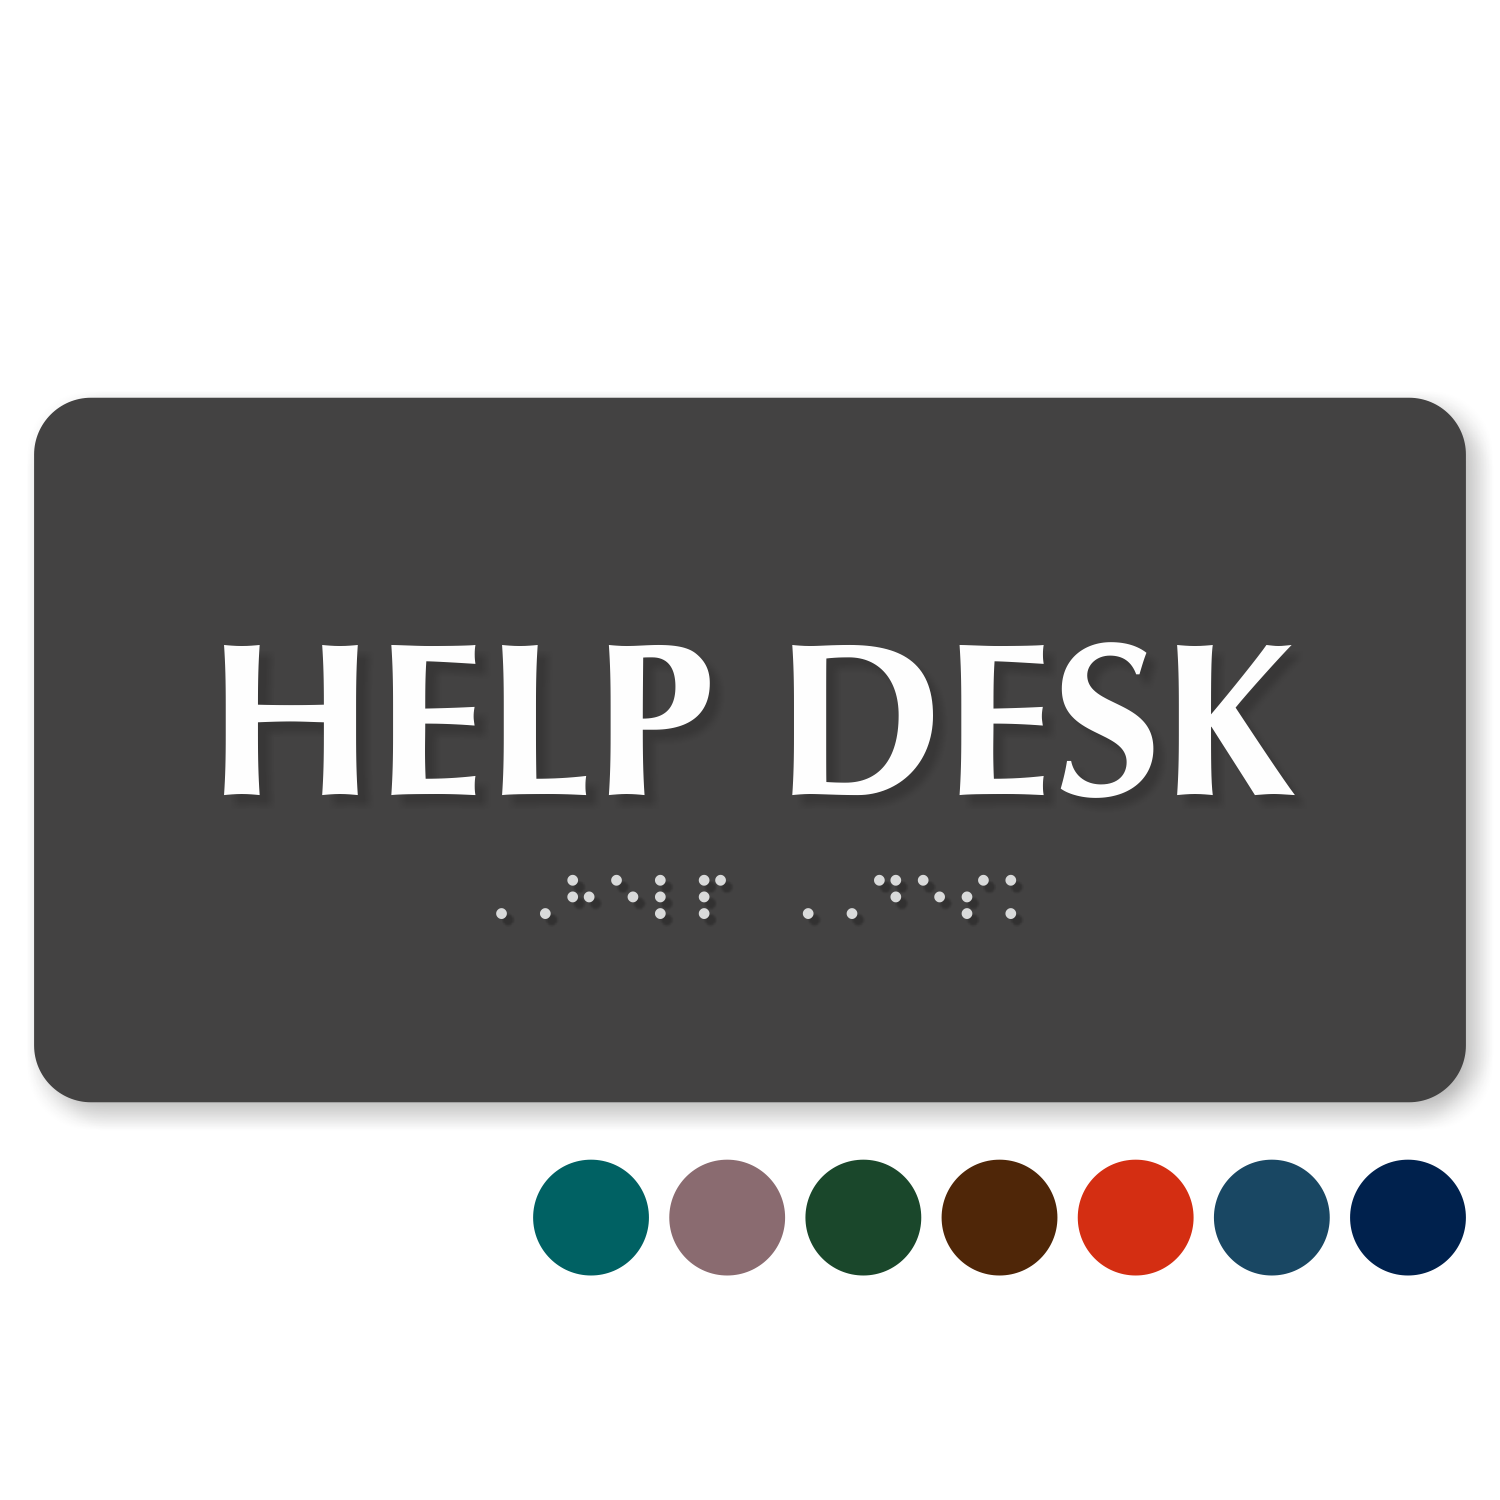 poor the gallery view transformative gadget a help desk aarambh for is helpdesk in students cardboard